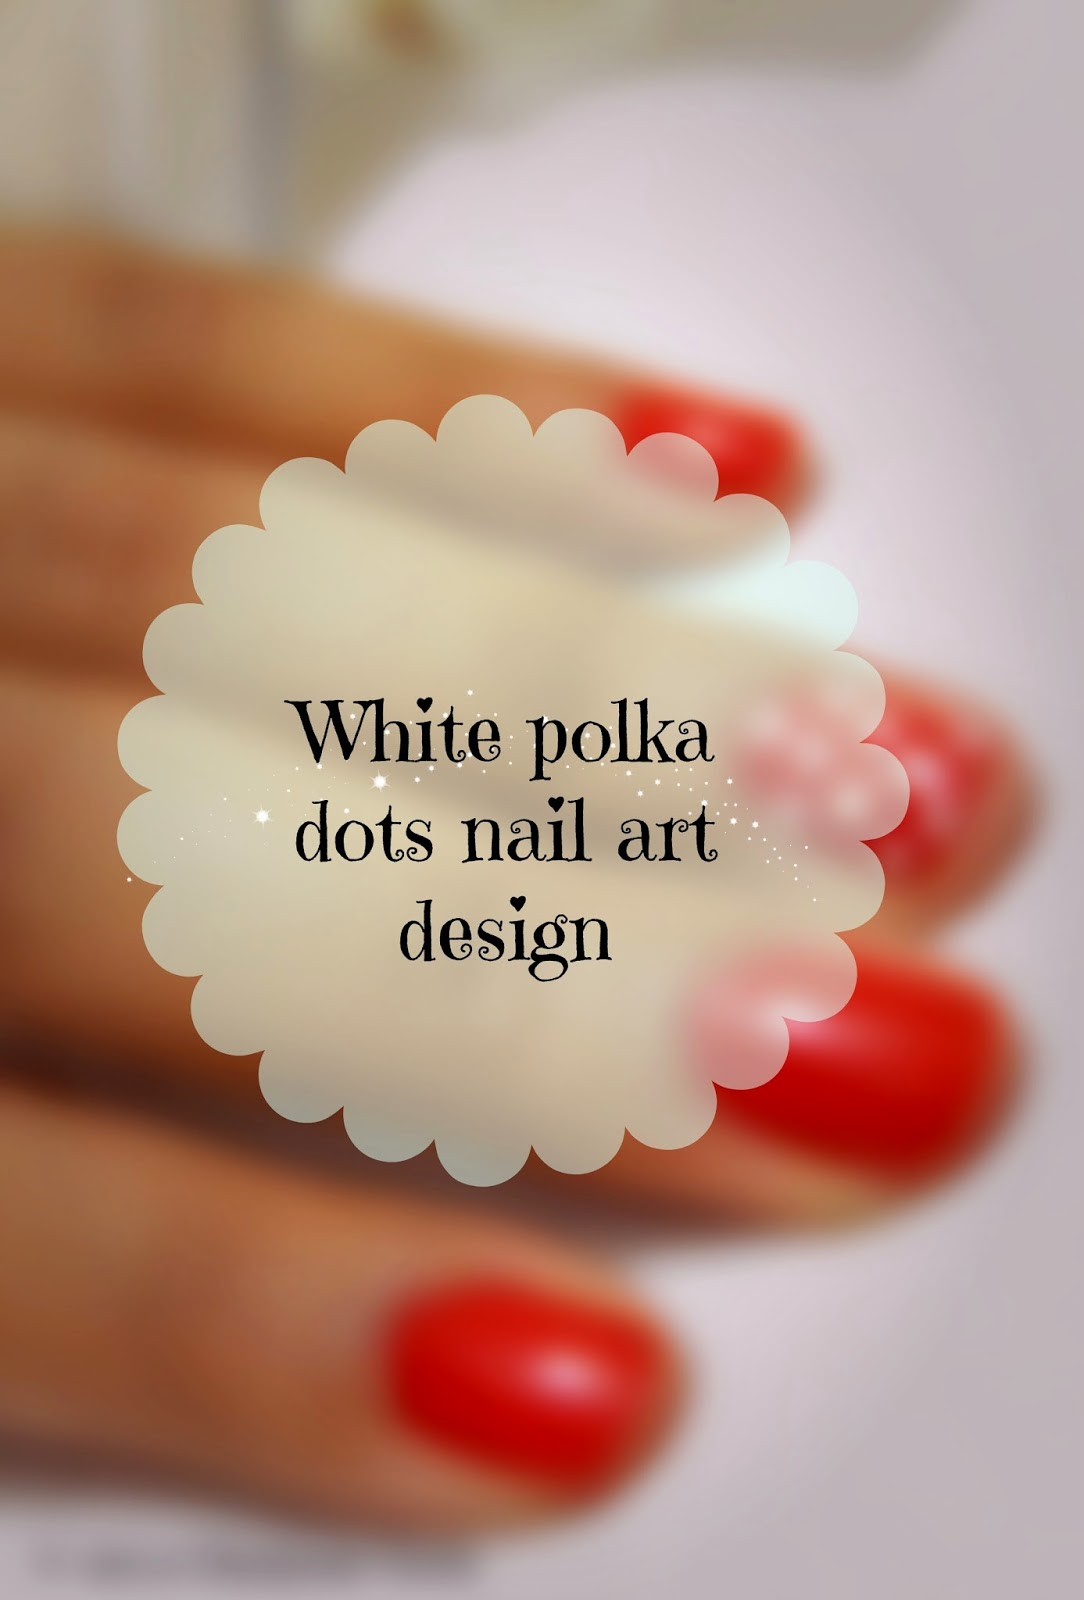 White Polka dots nail art design